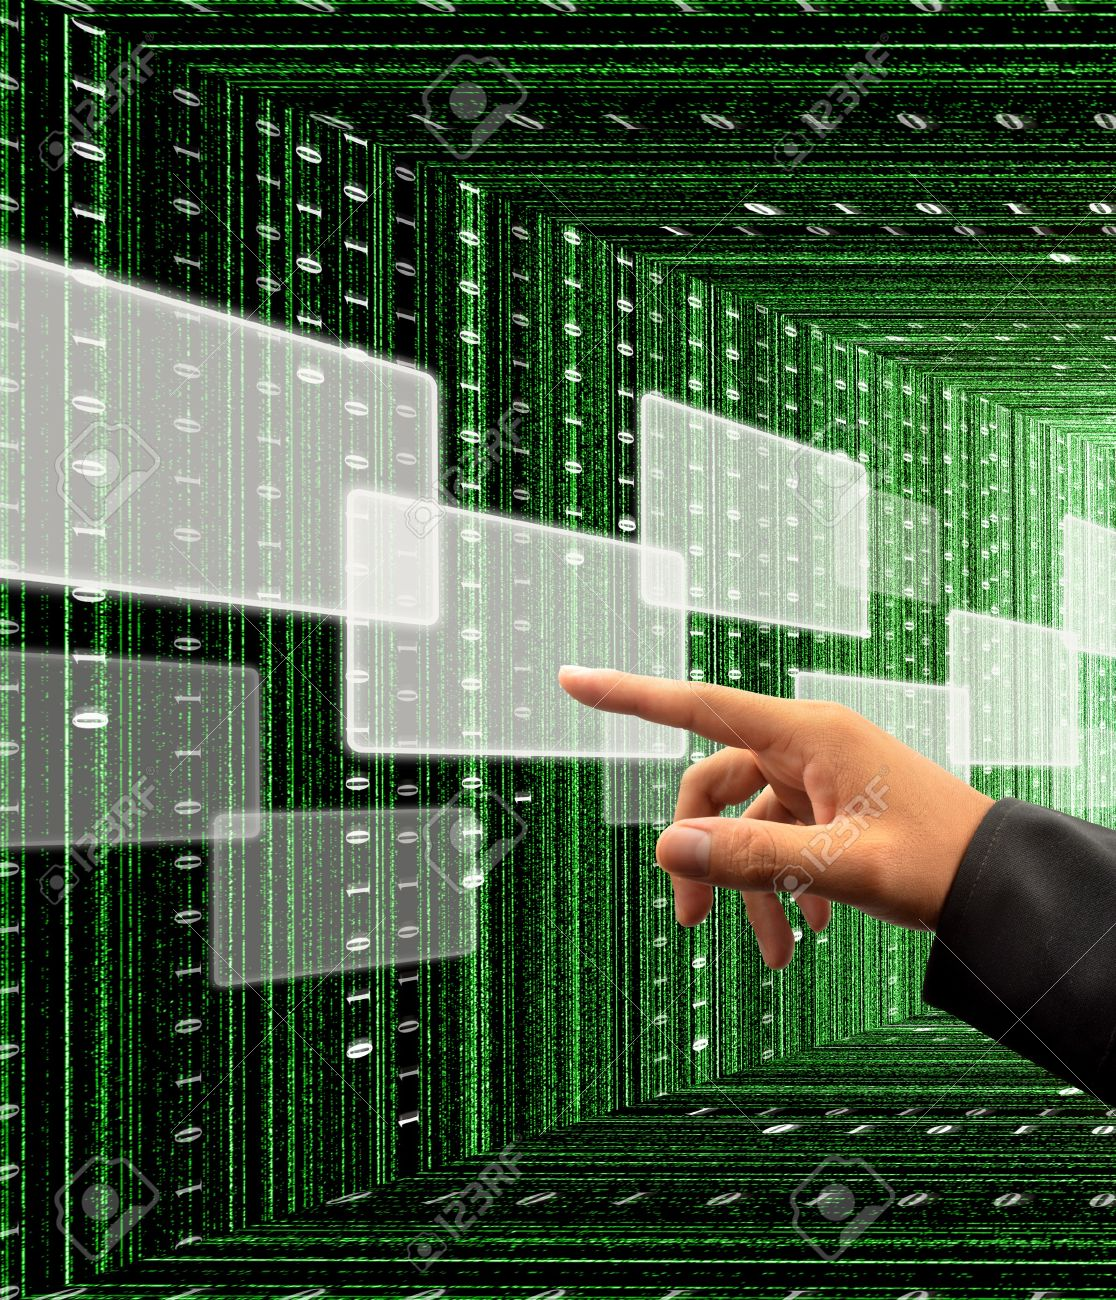 10051581-hand-pushing-a-button-on-a-touch-screen-interface-with-digital-matrix-background-Stock-Photo